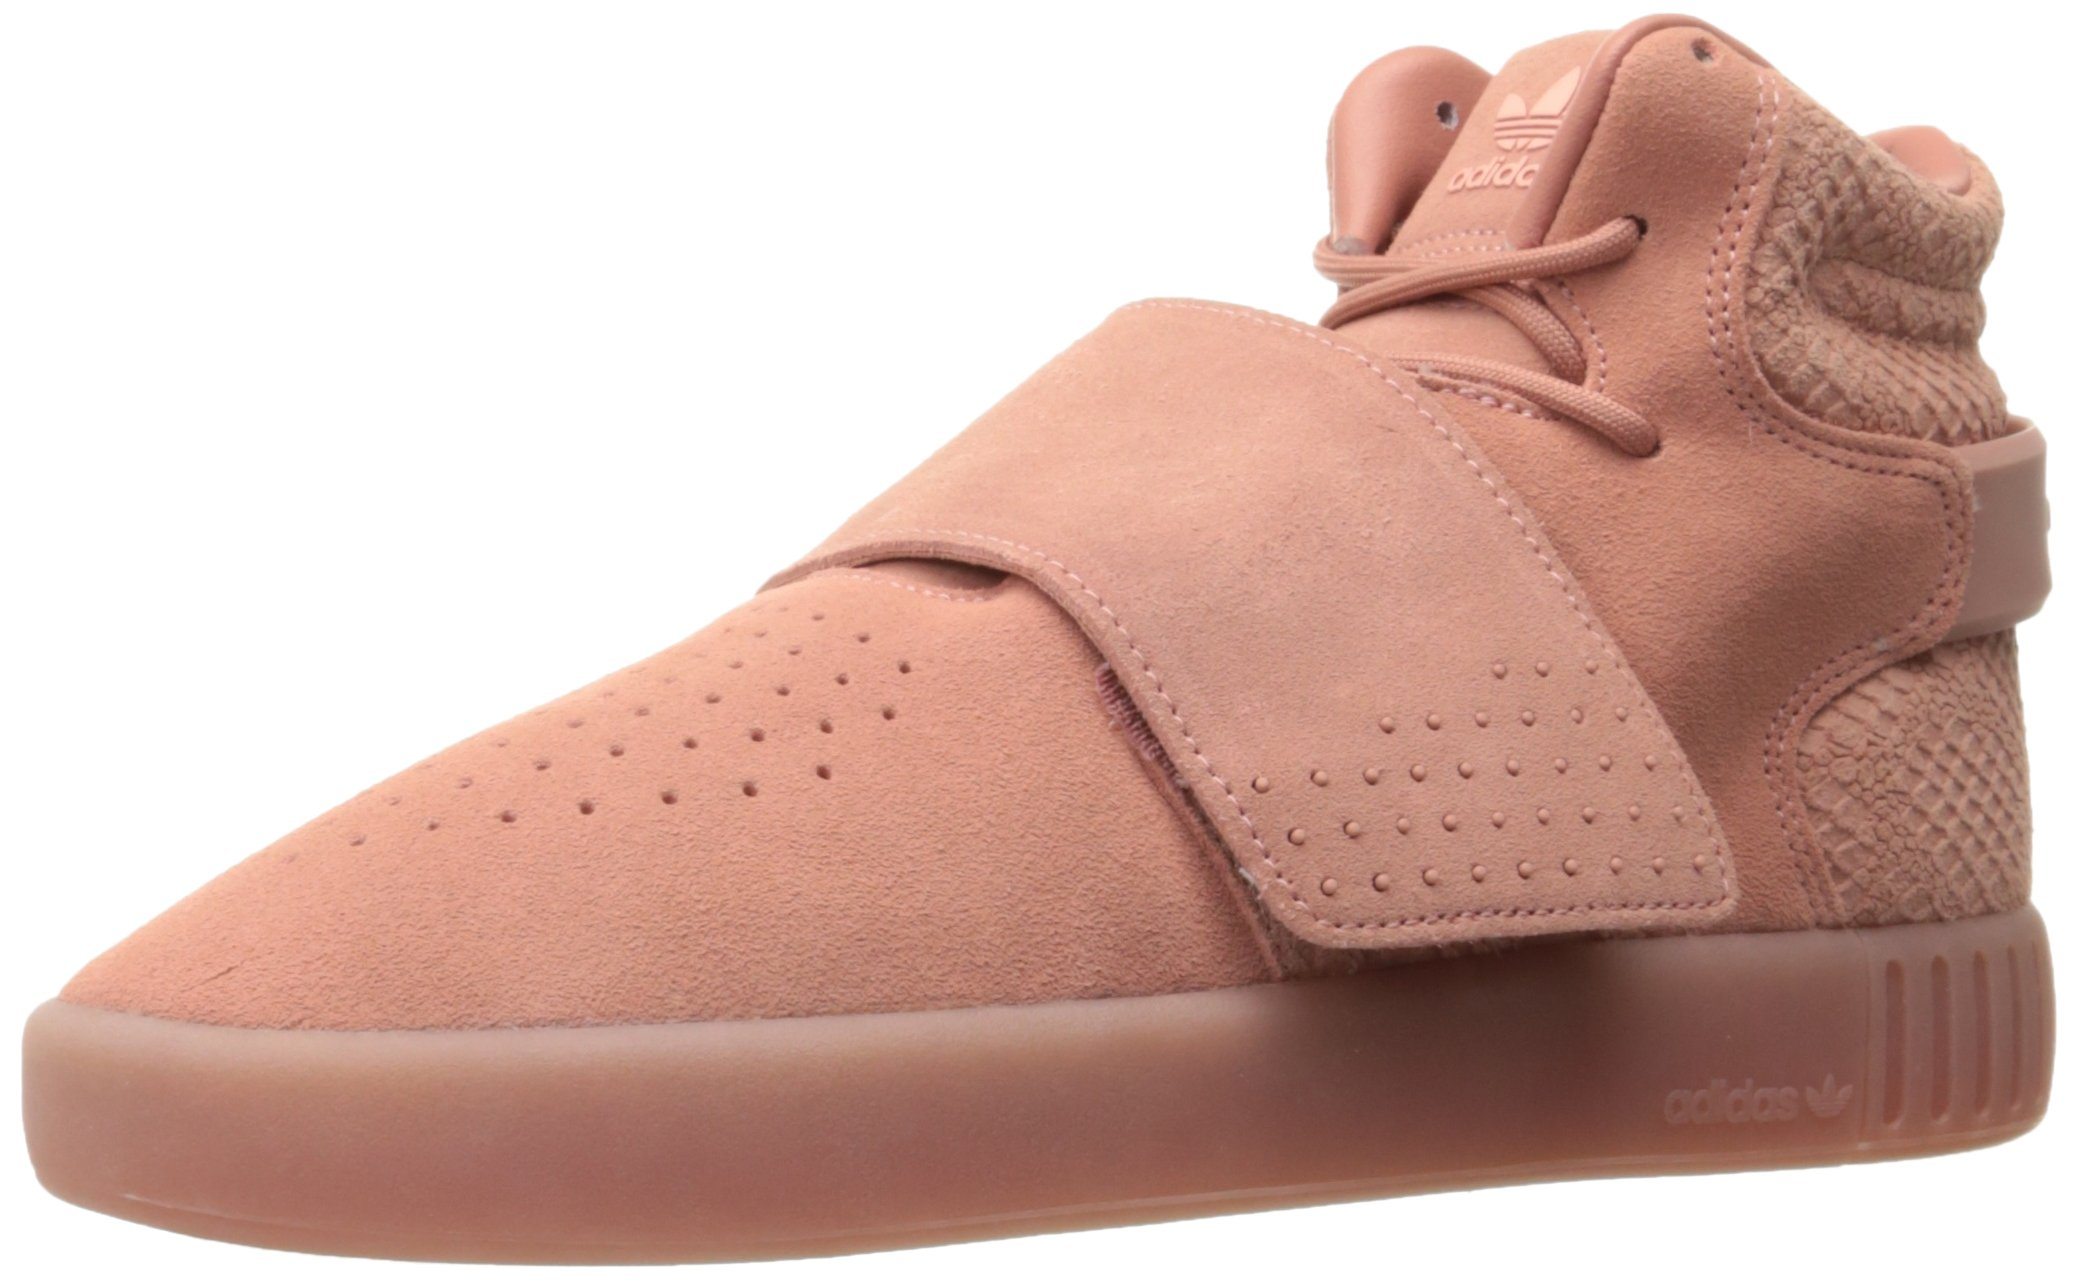 new arrival 5d261 51769 Galleon - Adidas Originals Women s Tubular Invader Strap Fashion Running  Shoe, Raw Pink Still Breeze F, (5.5 M US)